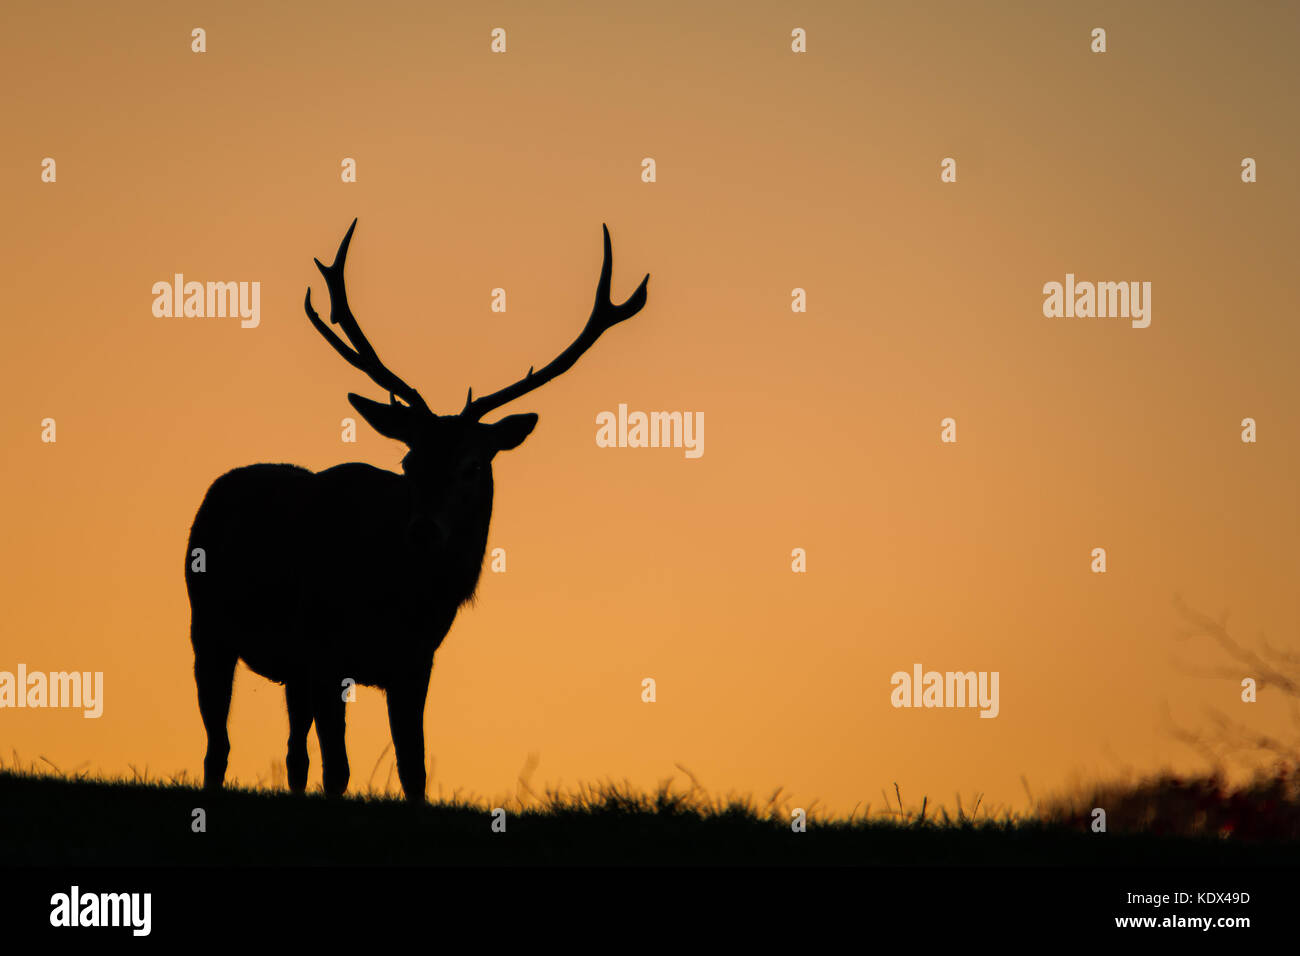 Silhouette of a Large Red Stag - Stock Image